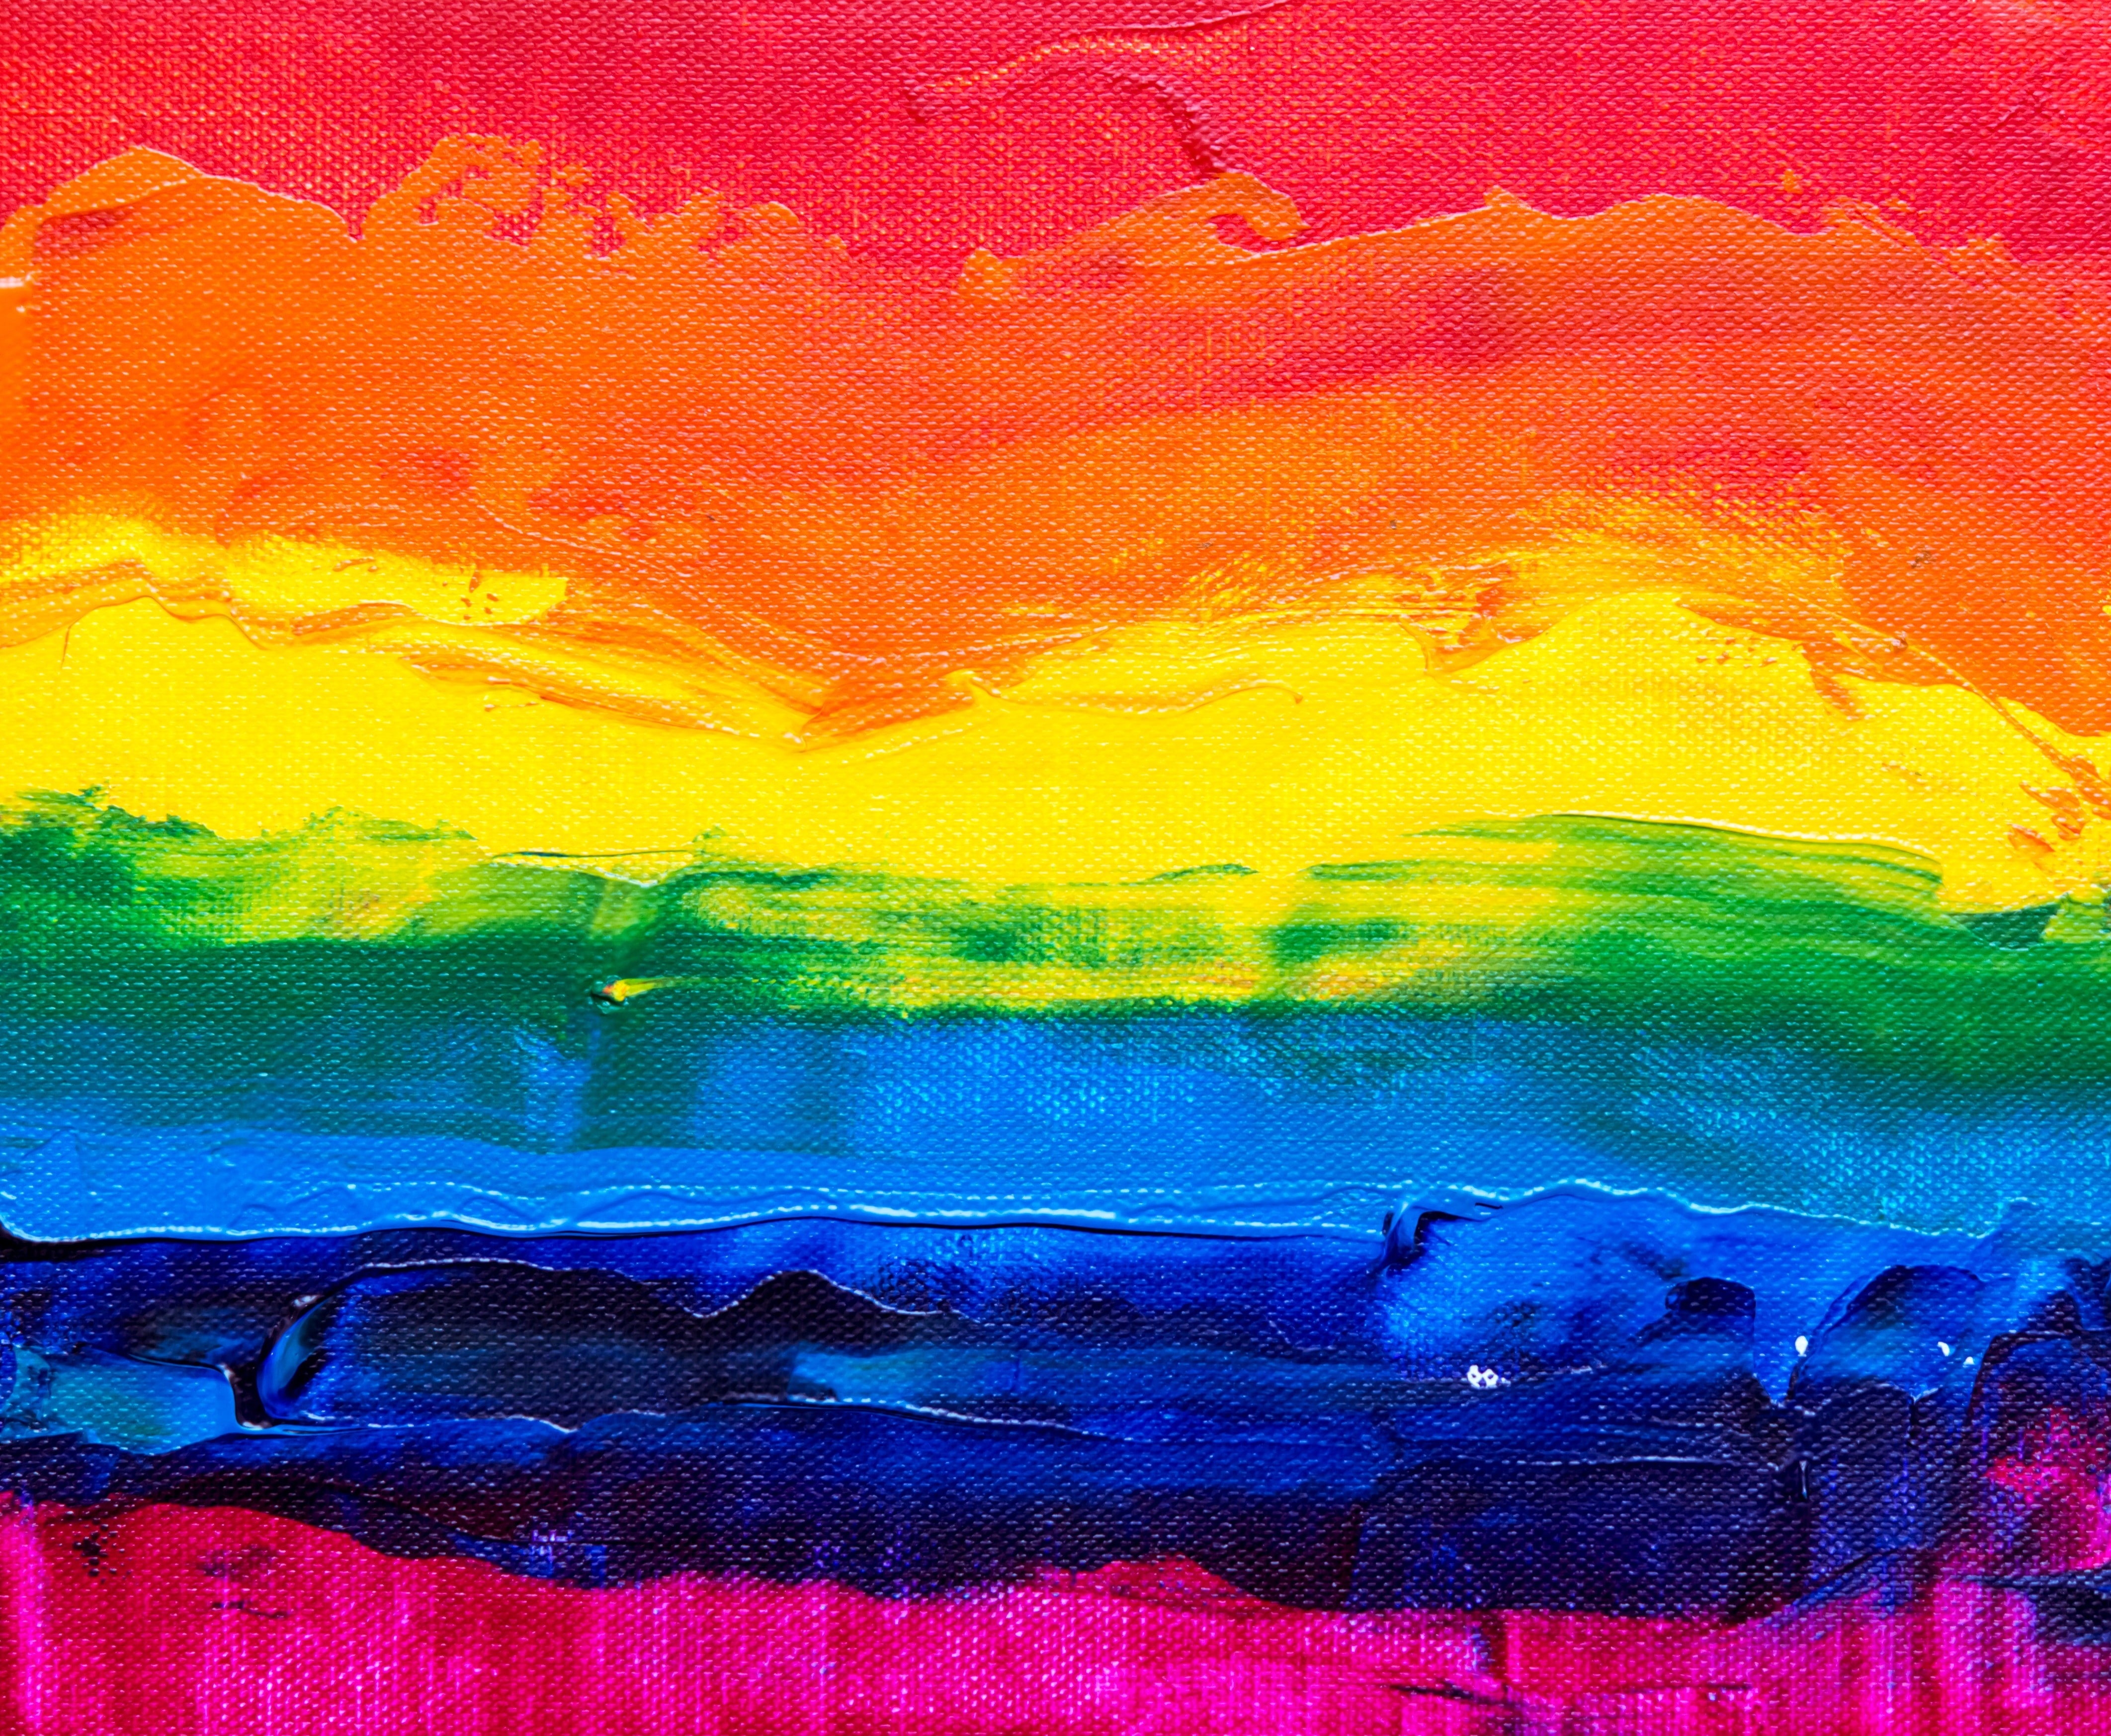 Color Therapy: How Does Color Affect Our Moods?